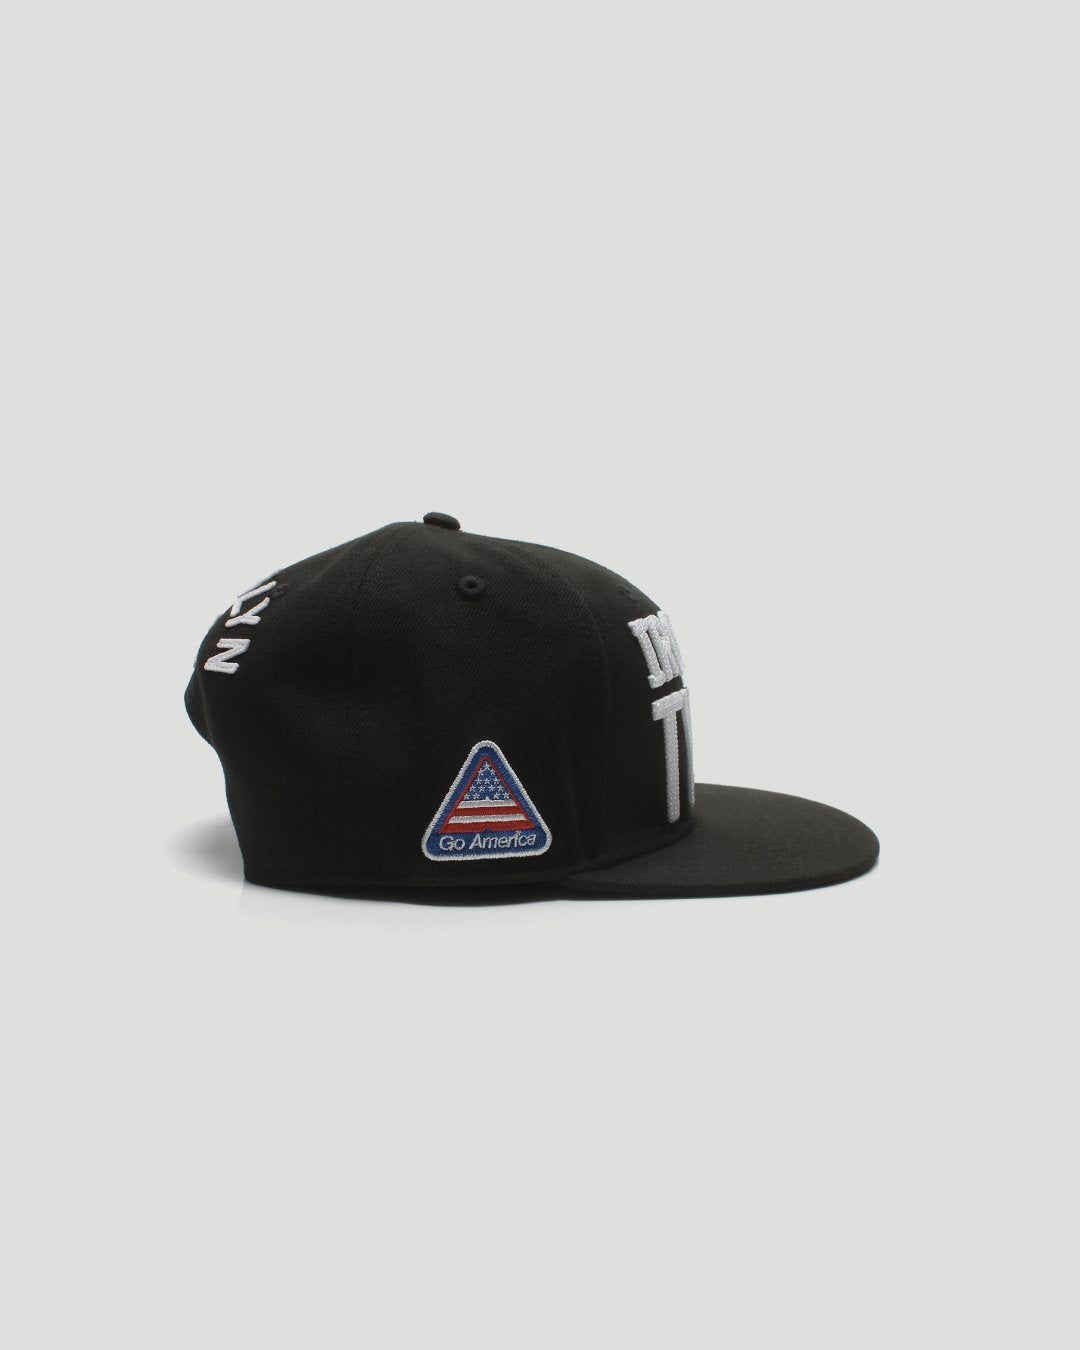 Iron Mike Tyson Classic Snapback Hat